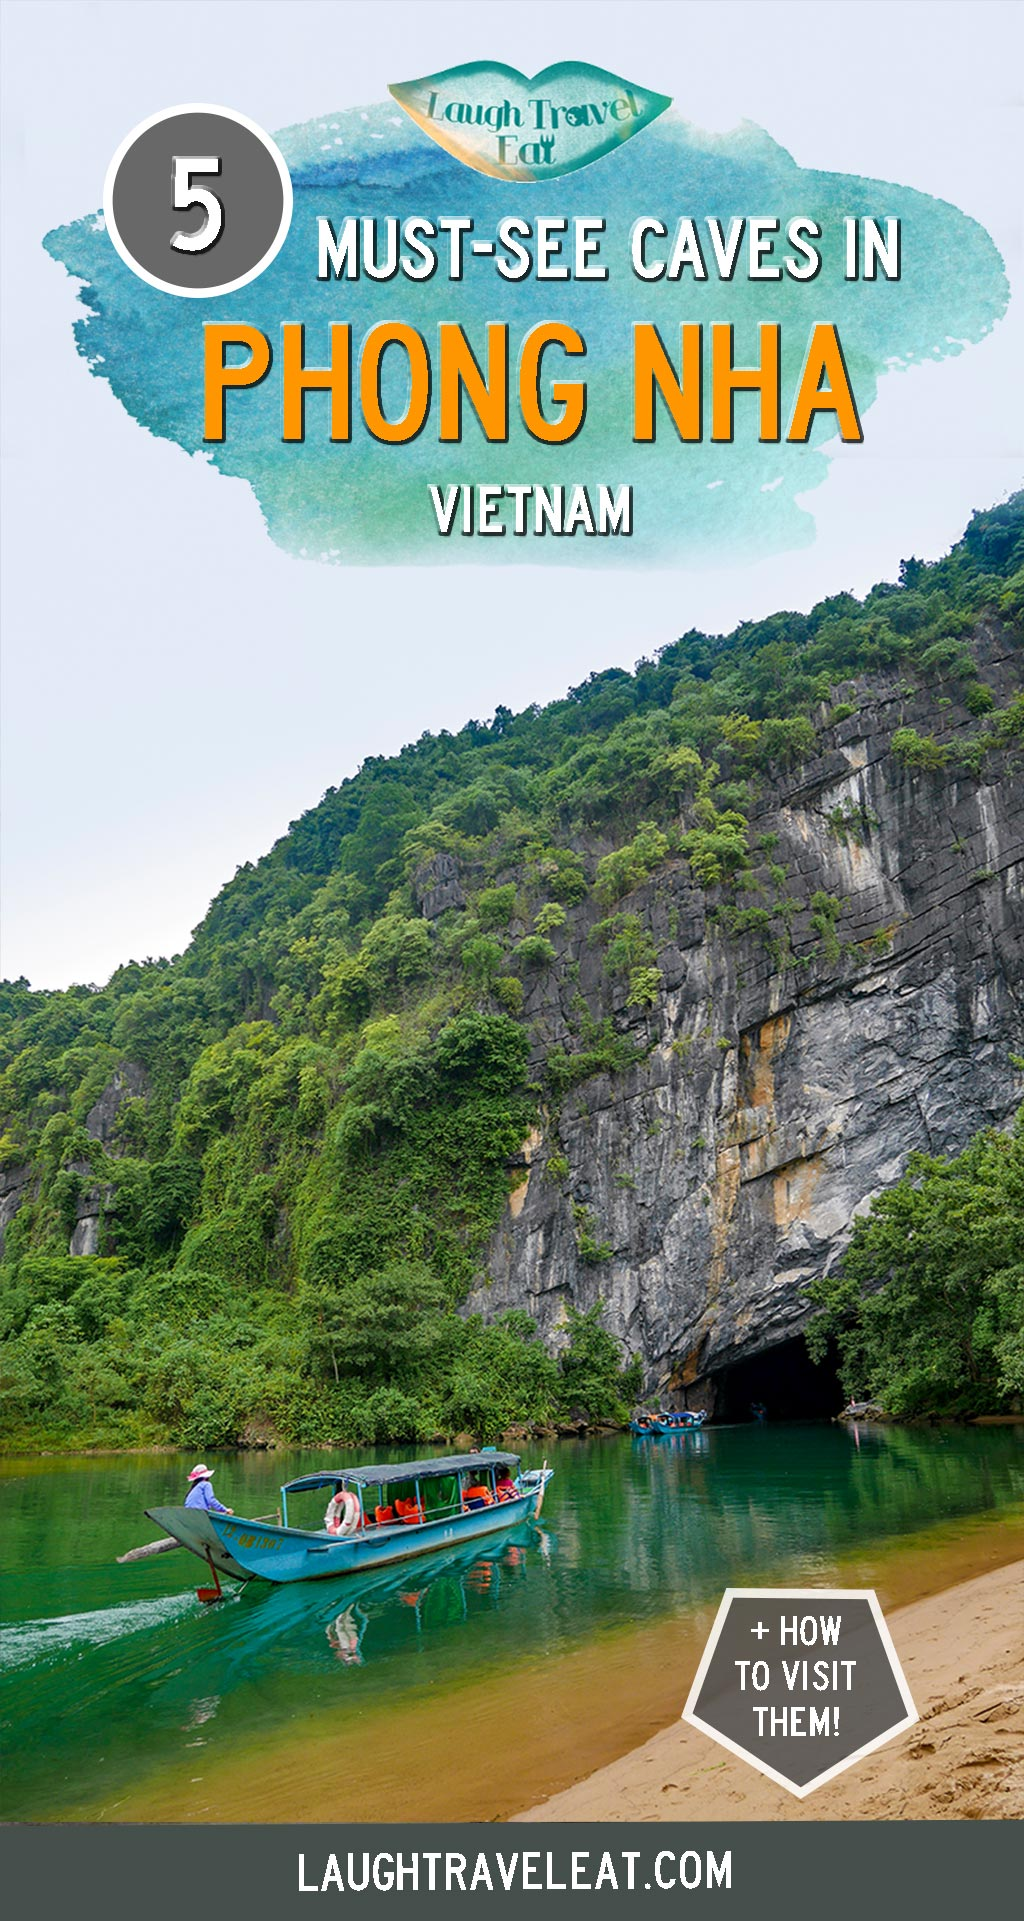 Phong Nha is a small town in north central Vietnam with one of the best cave structures in the world. Here's where to stay, what to eat, and how to visit these amazing caves #PhongNha #Vietnam